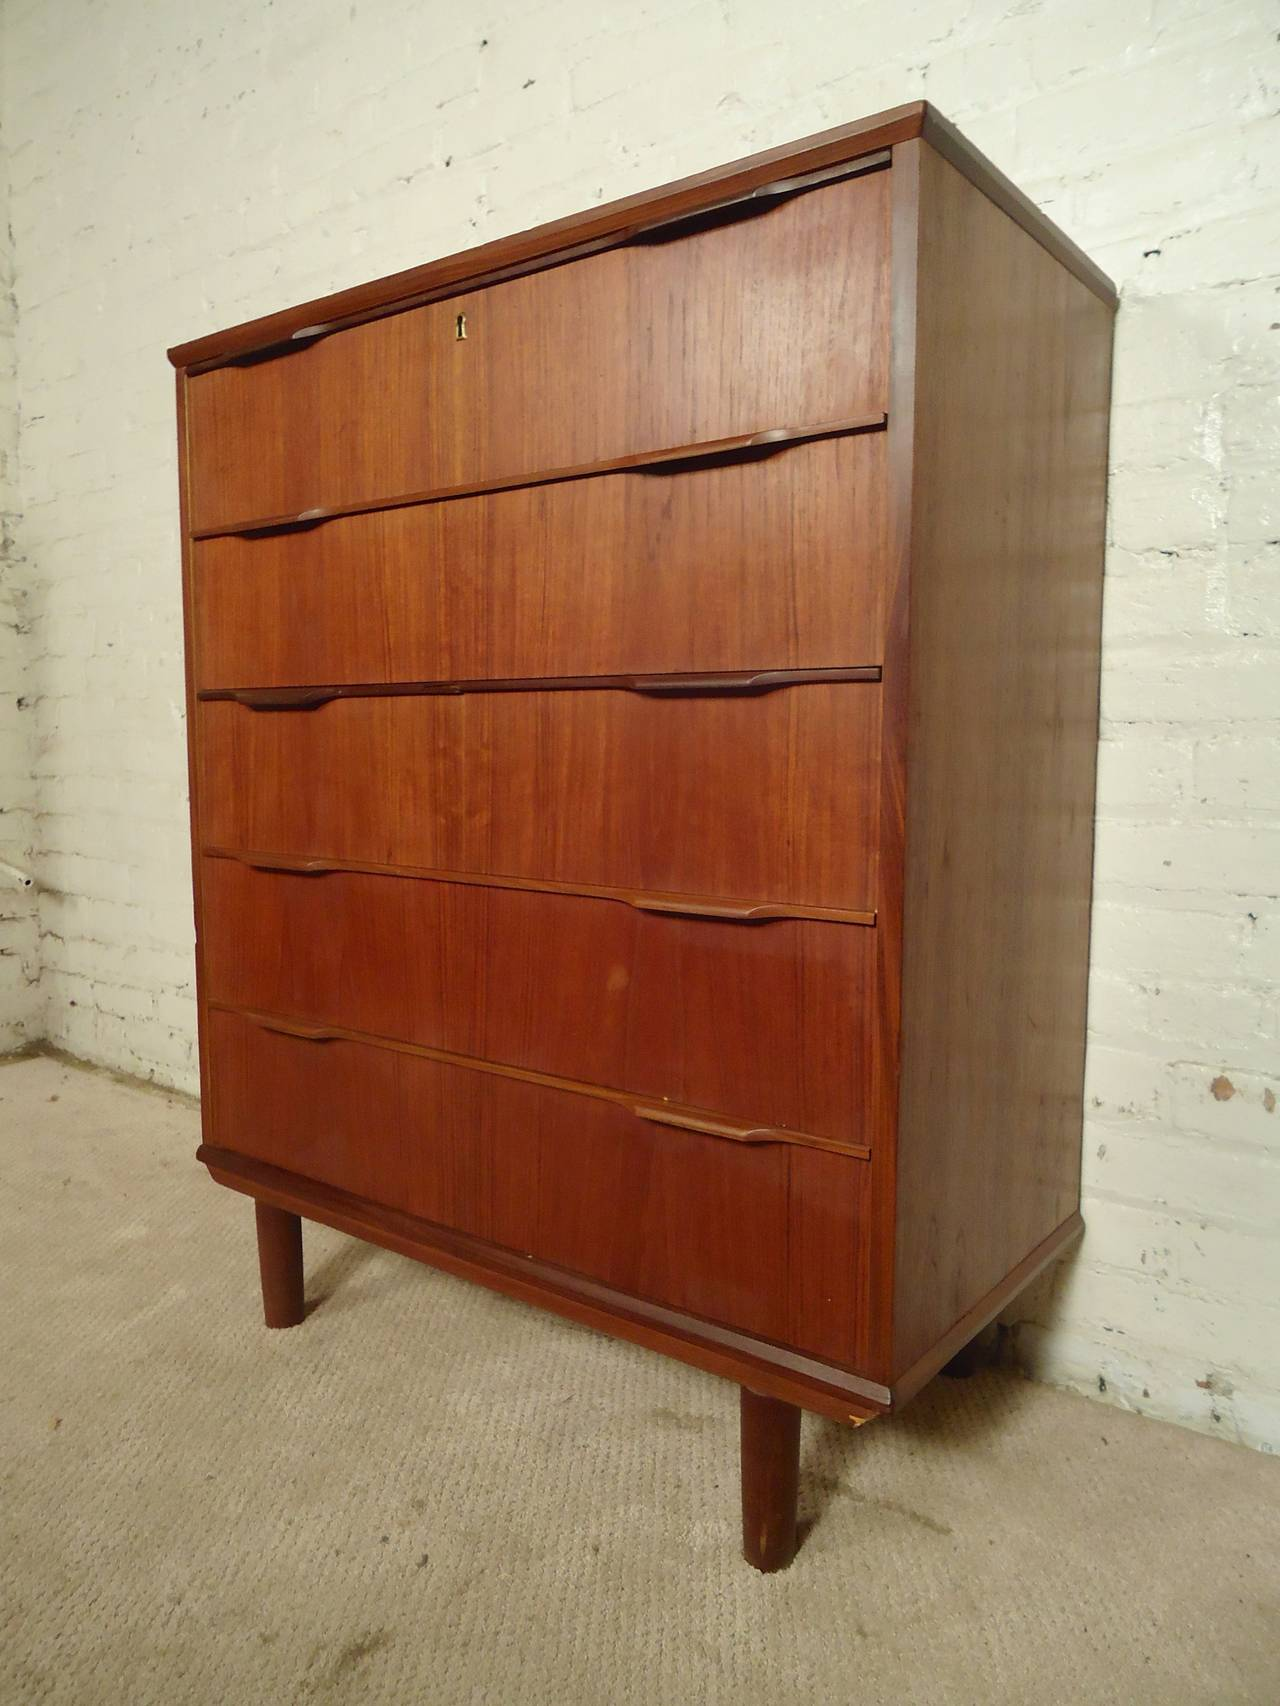 #7C3719 Danish Modern Tall Dresser For Sale At 1stdibs with 1280x1706 px of Best Modern Tall Dresser 17061280 image @ avoidforclosure.info